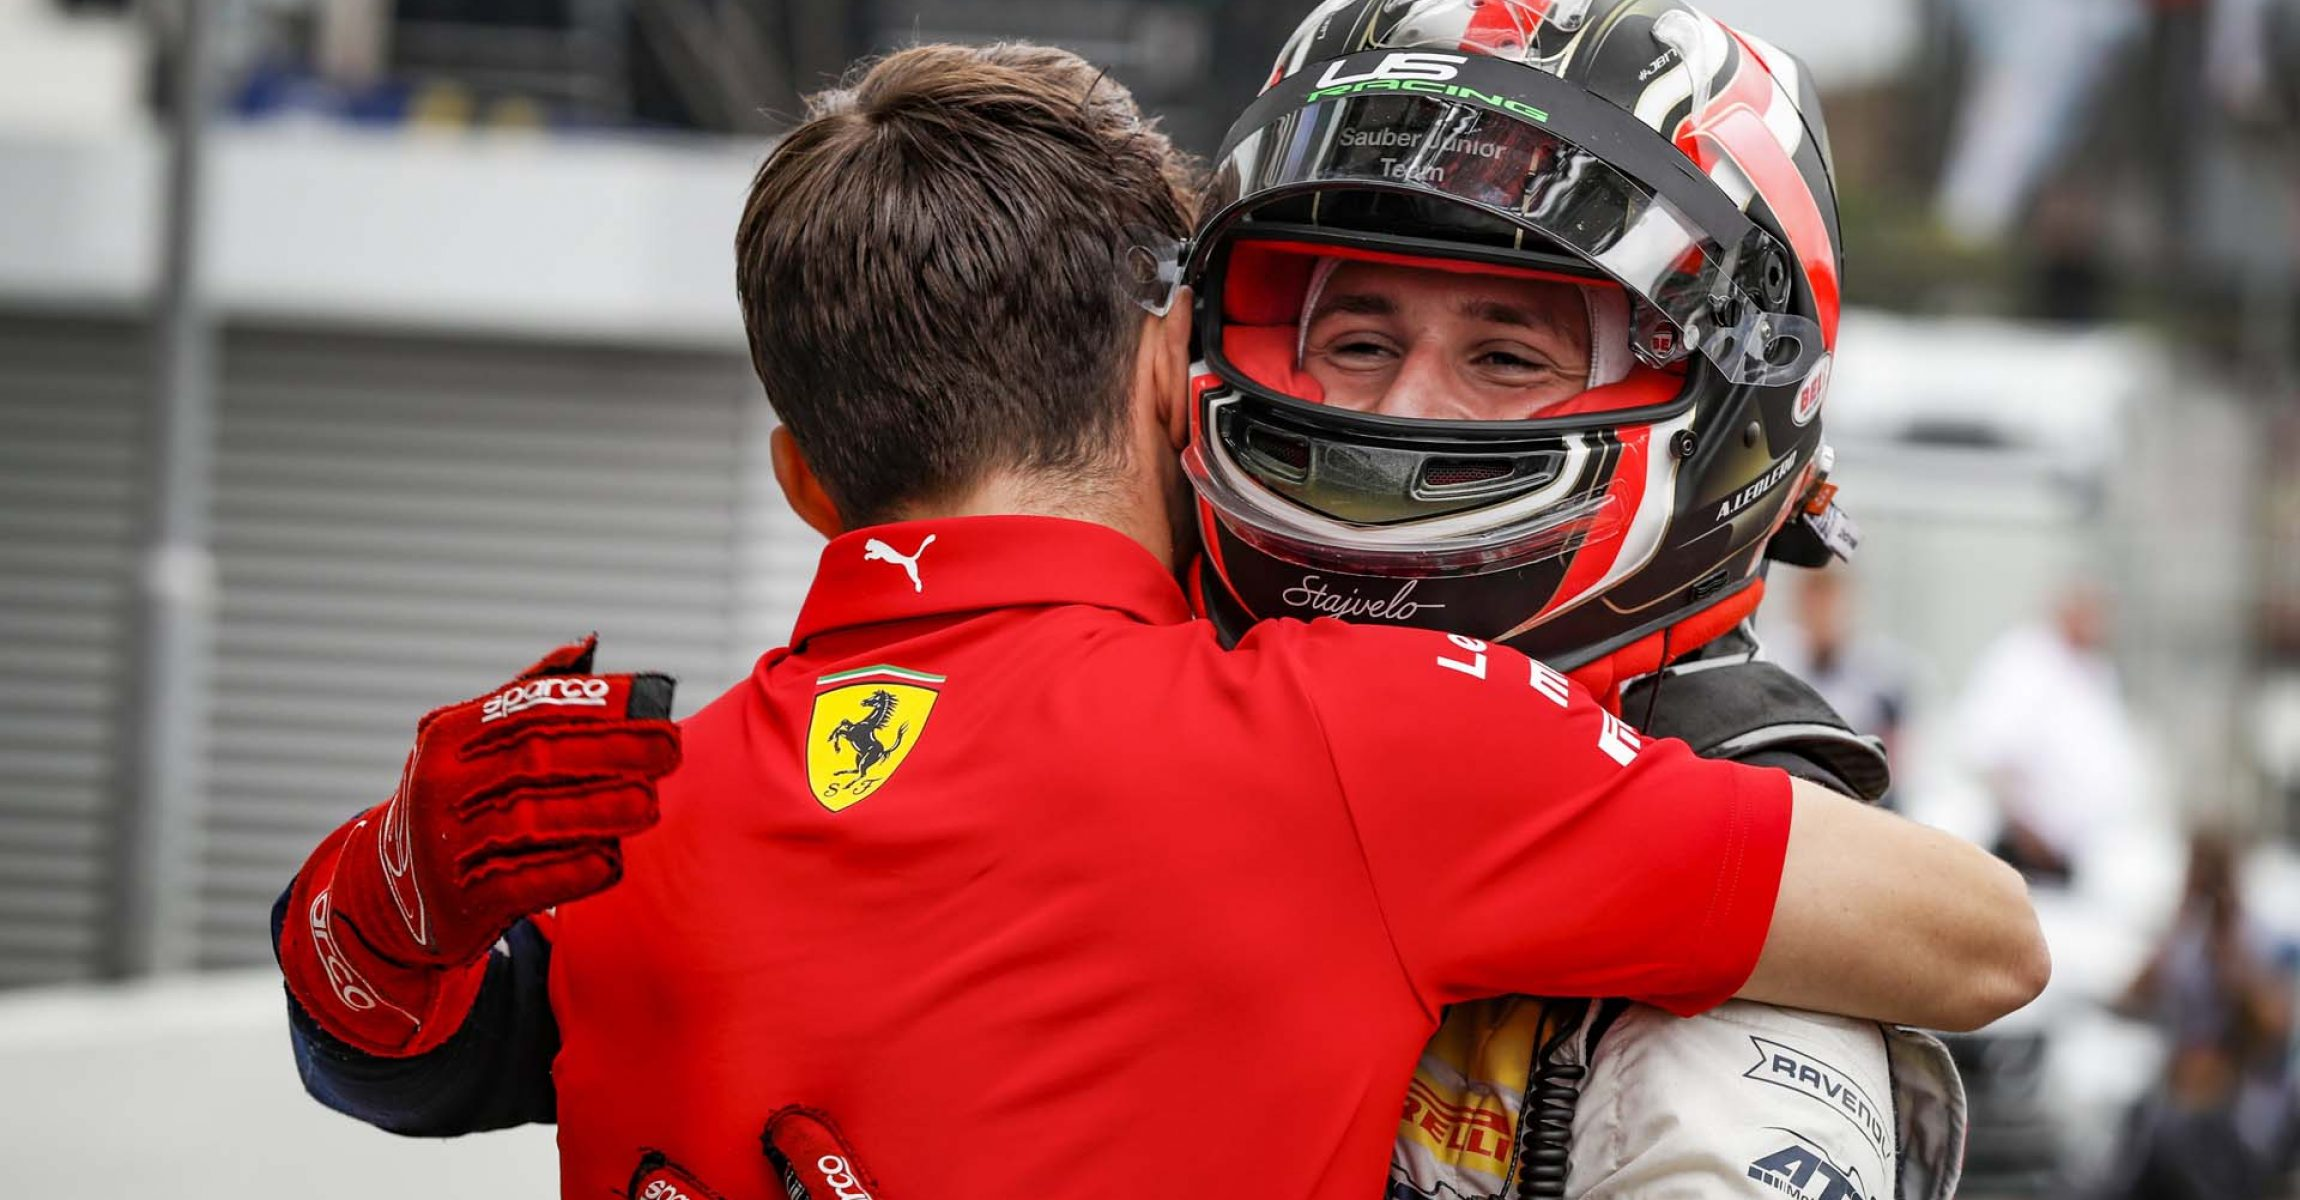 ADAC F4 Germany Championship: LECLERC Arthur of the Sauber Junior Team, celebrating victory with his brother LECLERC Charles (mco), during the 2019 Formula One World Championship, Germany Grand Prix from July 25 to 28, in Hockenheim, Germany - Photo Florent Gooden / DPPI